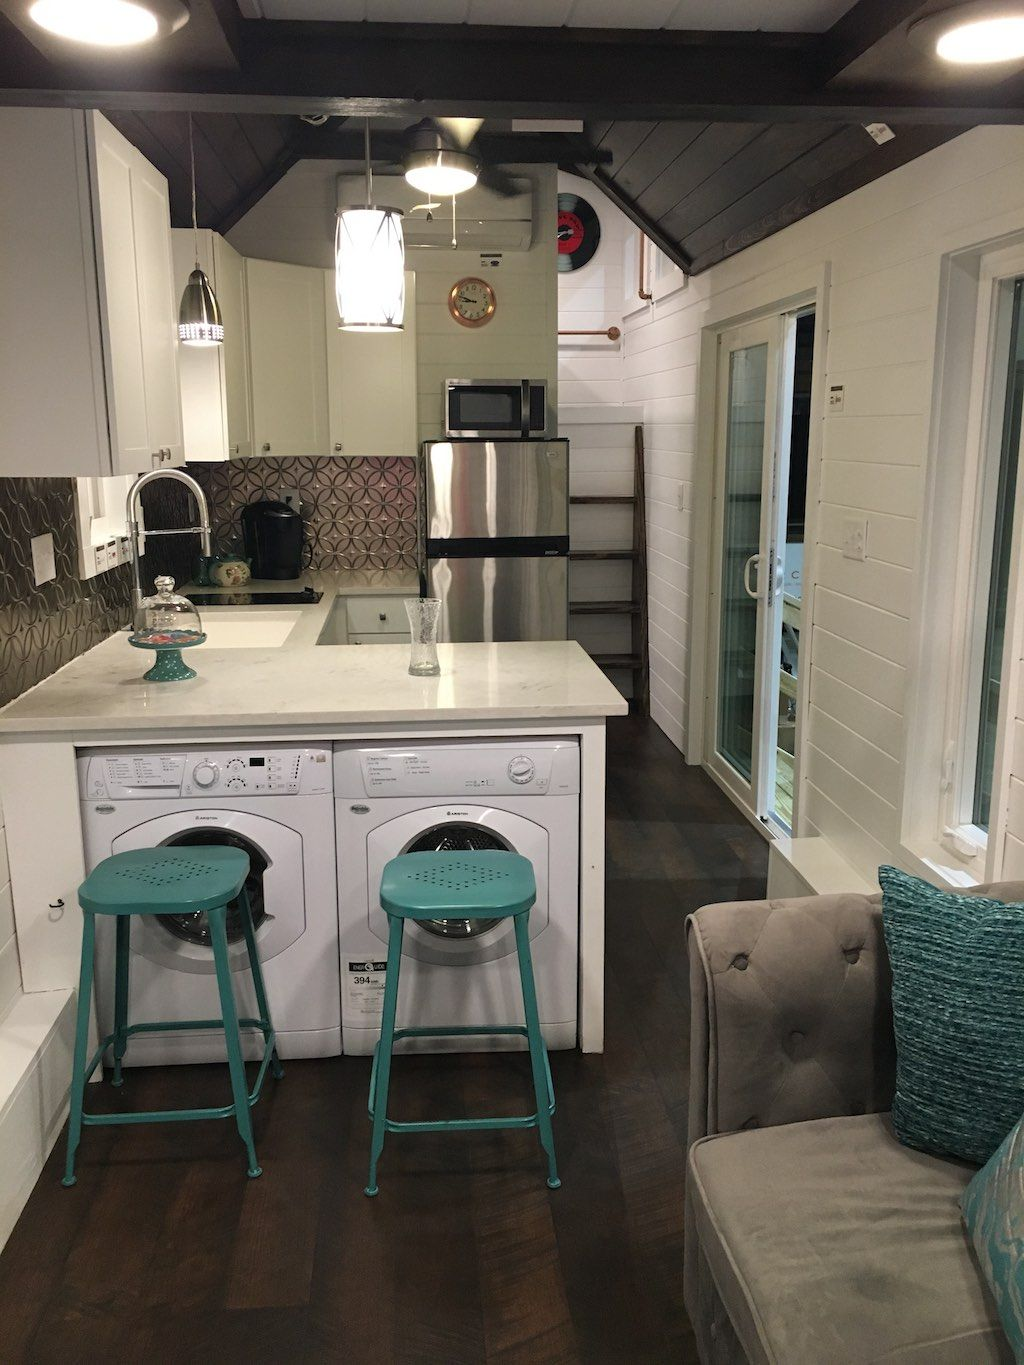 Cute tiny house ideas organization tips layout with loft also best images in rh pinterest